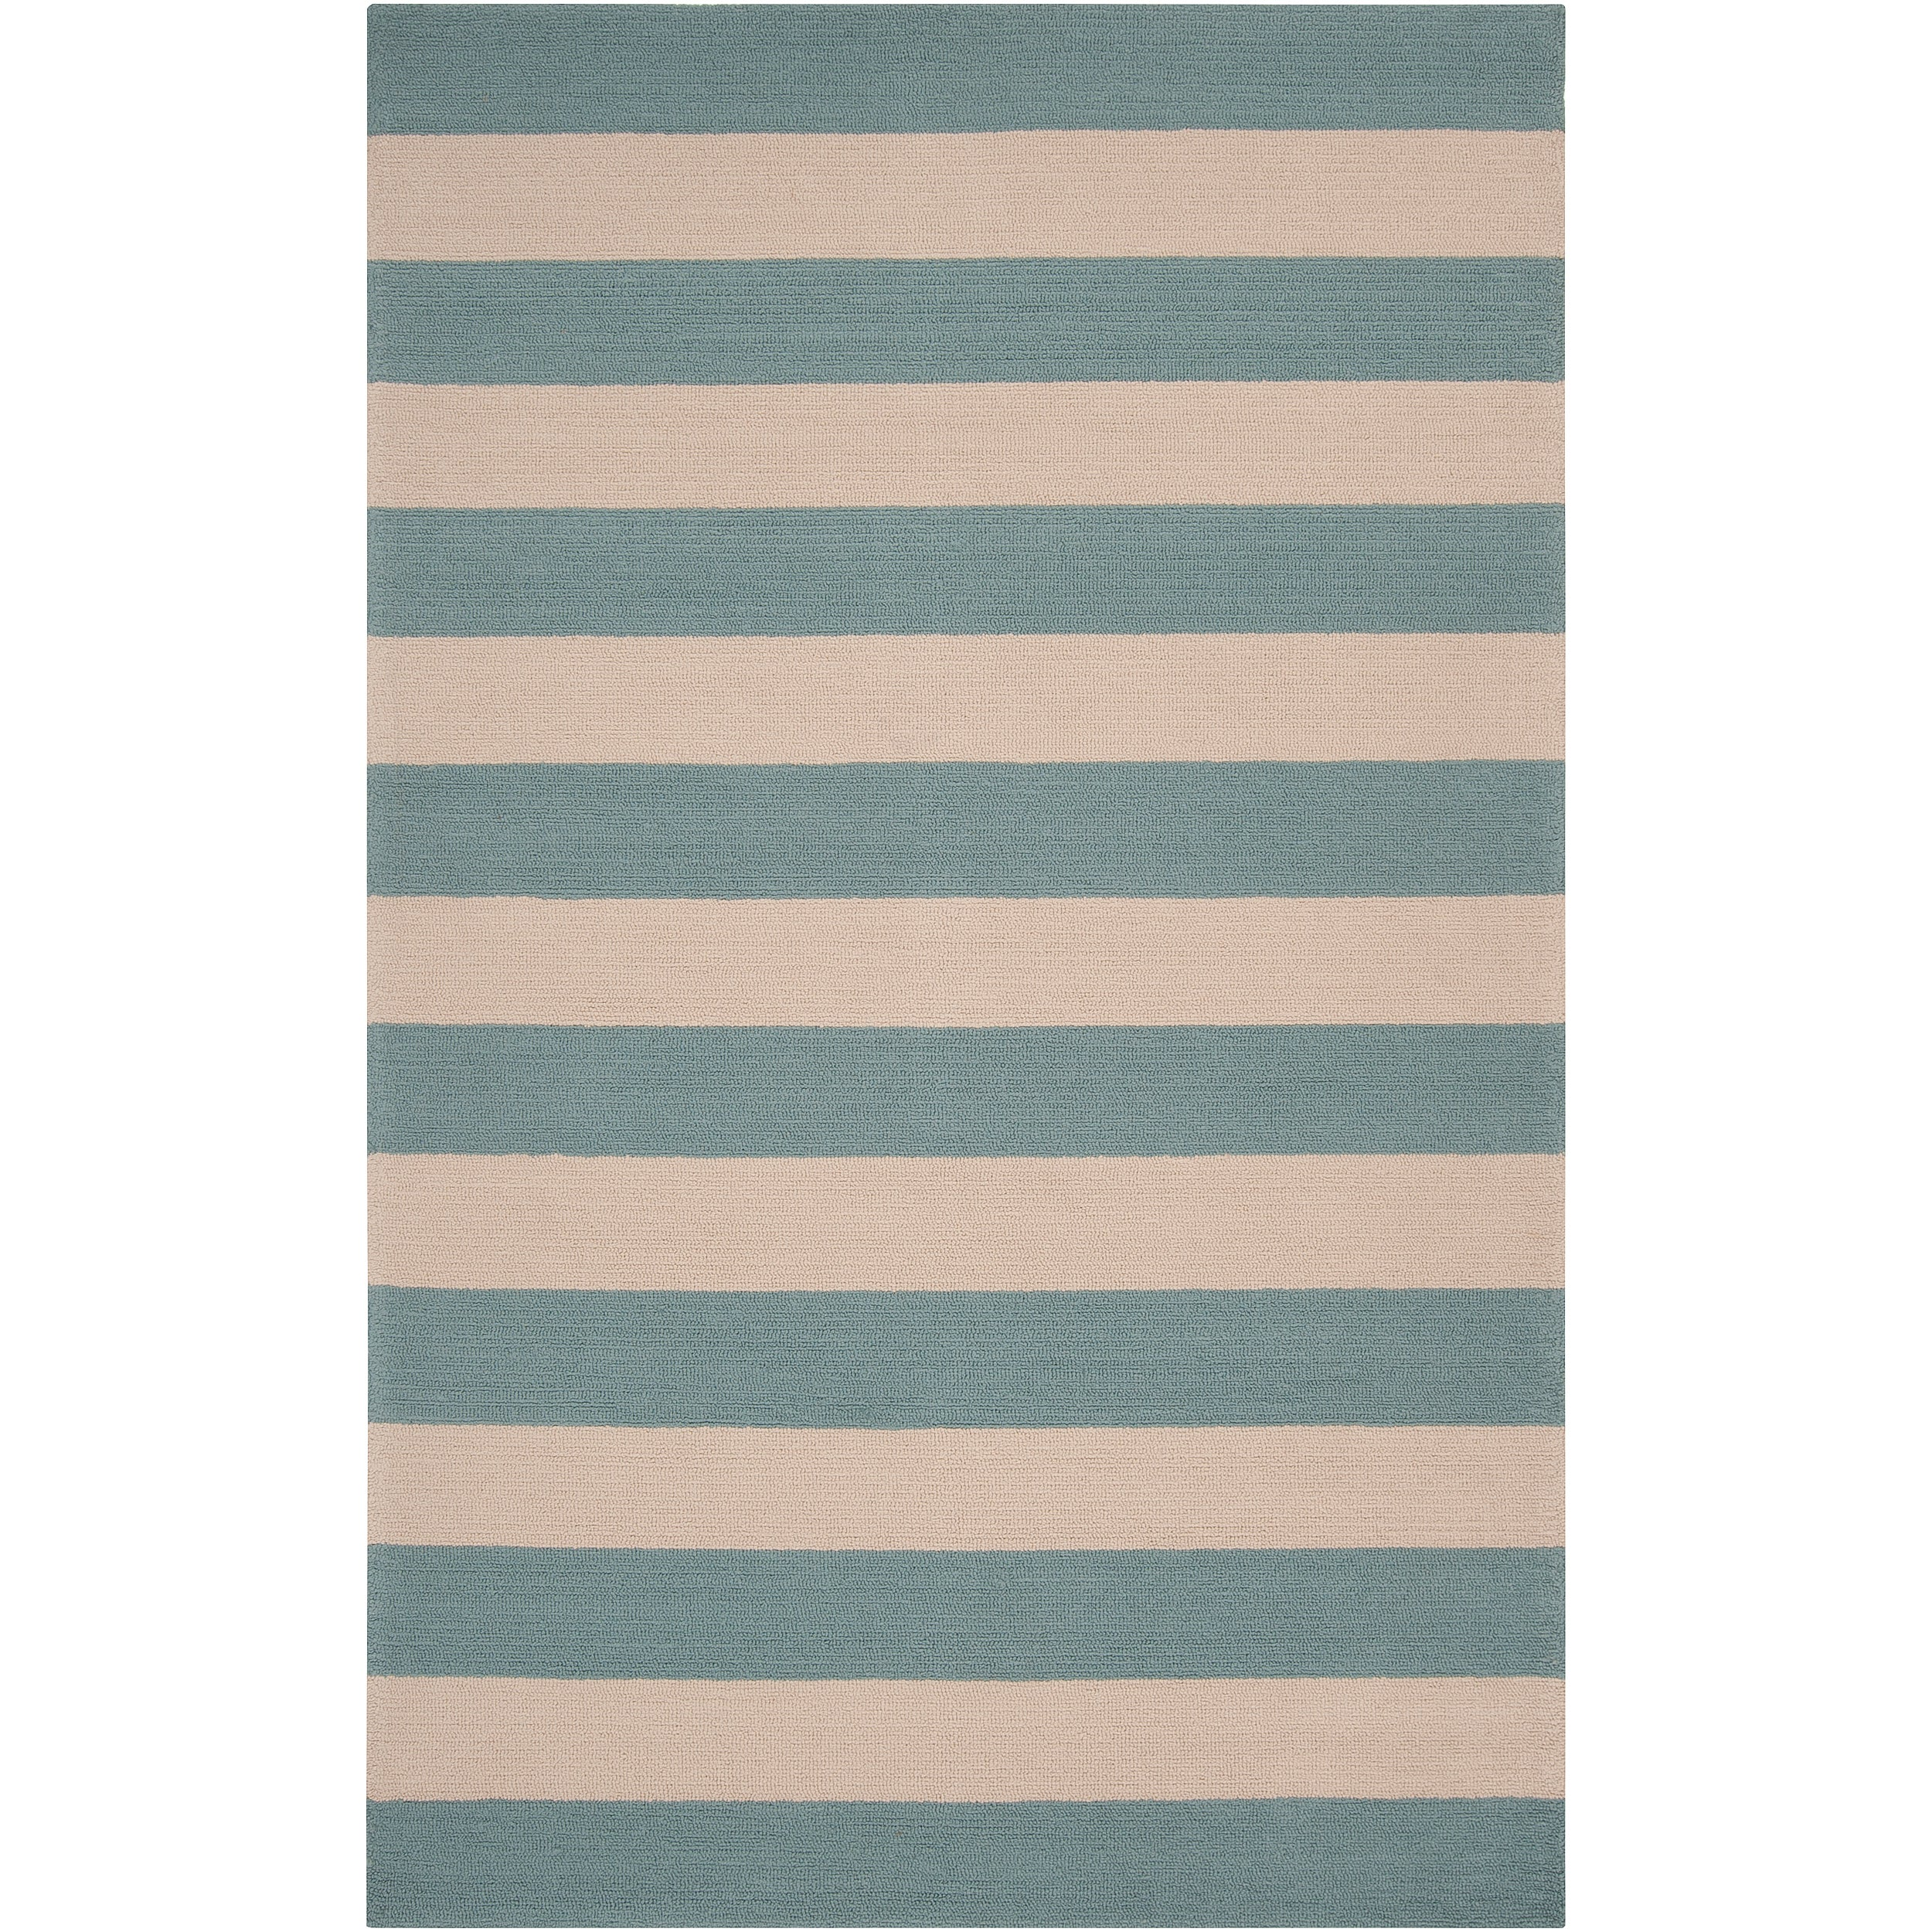 Hand hooked Blue Maligne Indoor Outdoor Stripe Rug 9 x